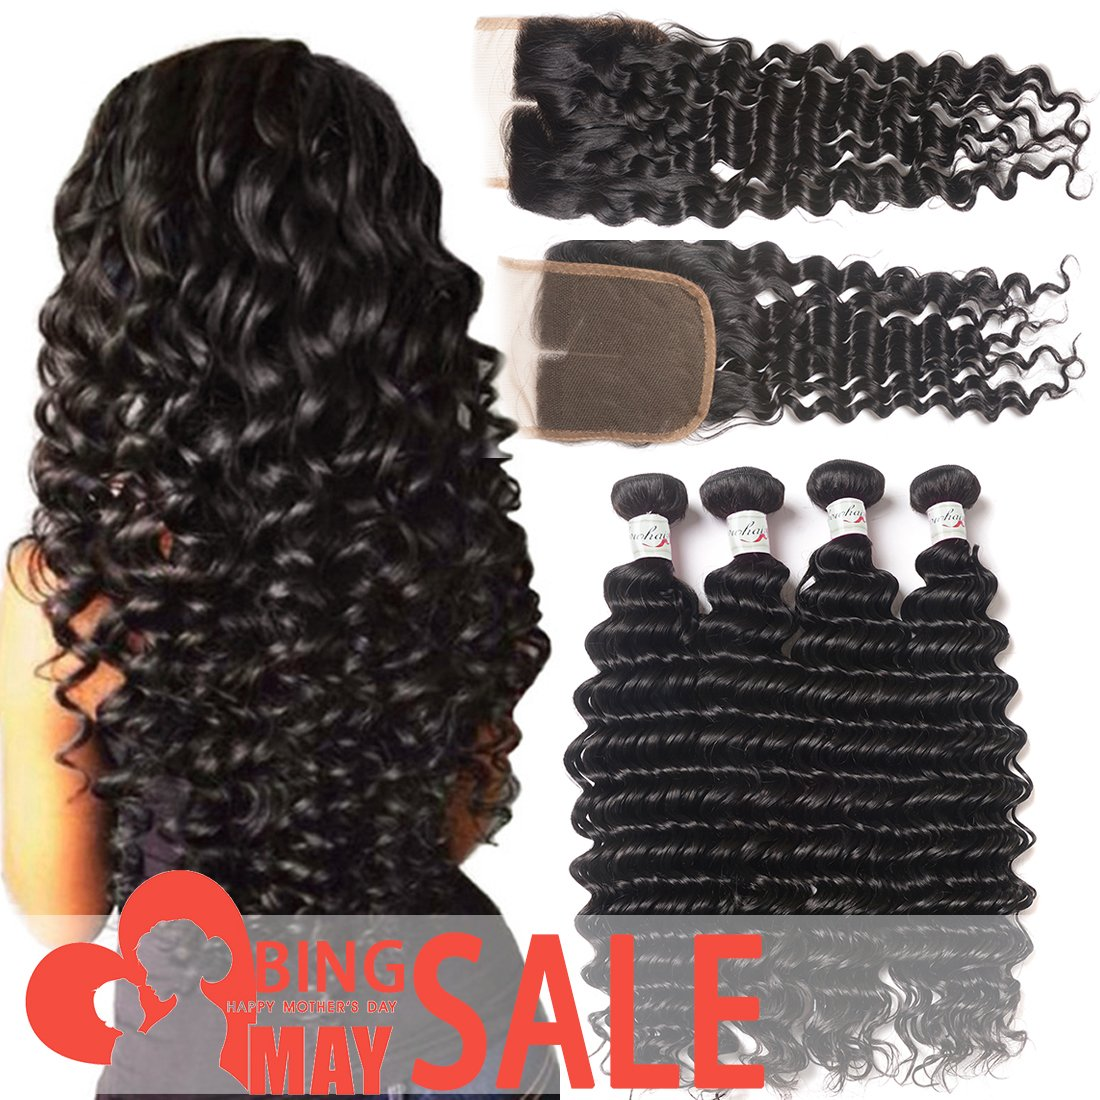 4 Bundles Brazilian Deep Wave Human Hair With Closure 100% Unprocessed Virgin Hair Extesion Deep Curly Remy Hair With Lace Closure Middle Part Natural Color (22 24 26 28+18 Lace Closure)